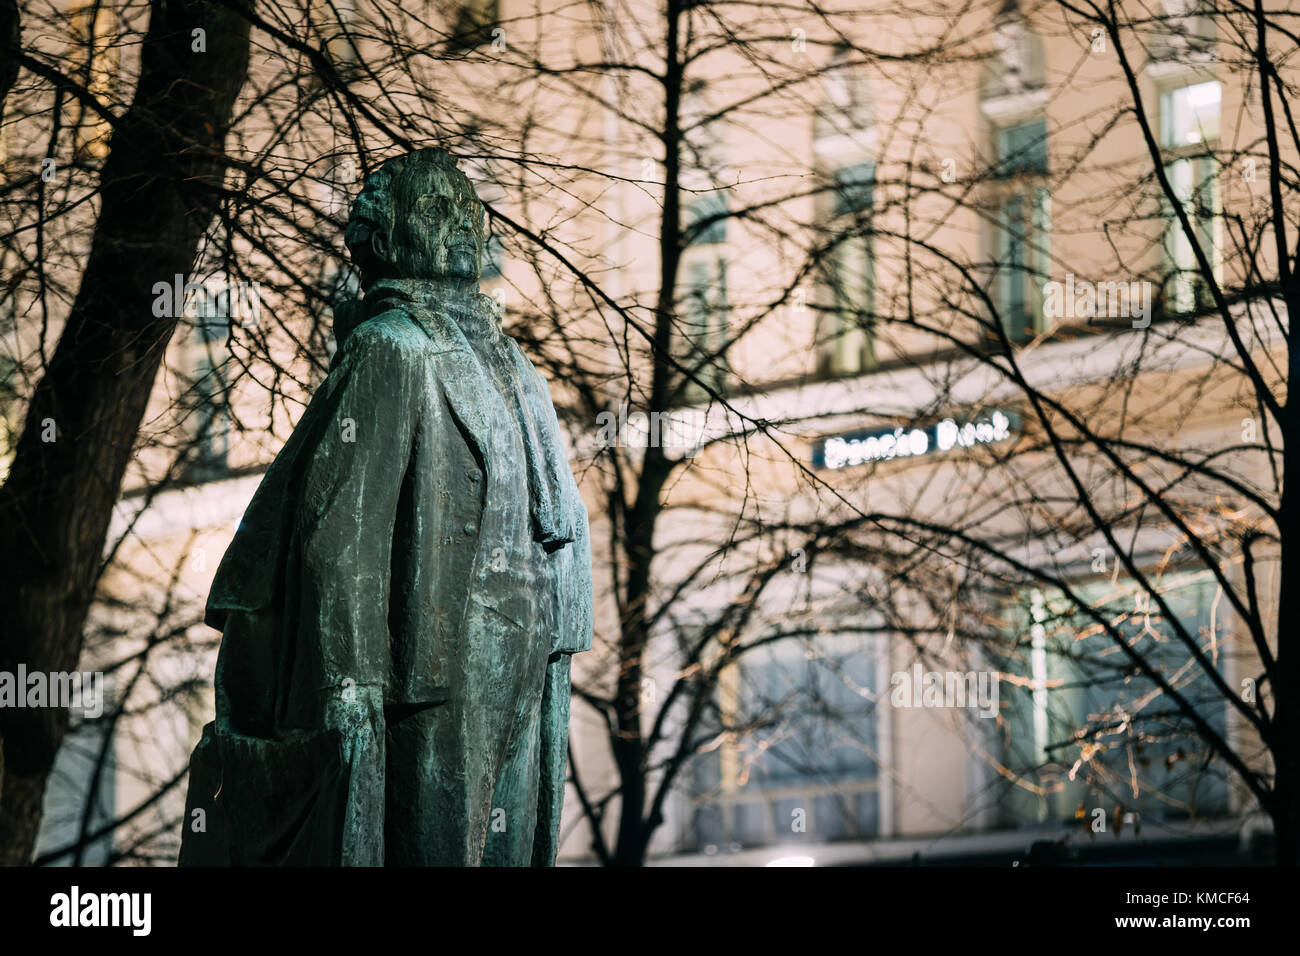 Helsinki, Finland. Evening View Of Monument To Finnish Poet And Journalist Eino Leino In Esplanade Park. - Stock Image